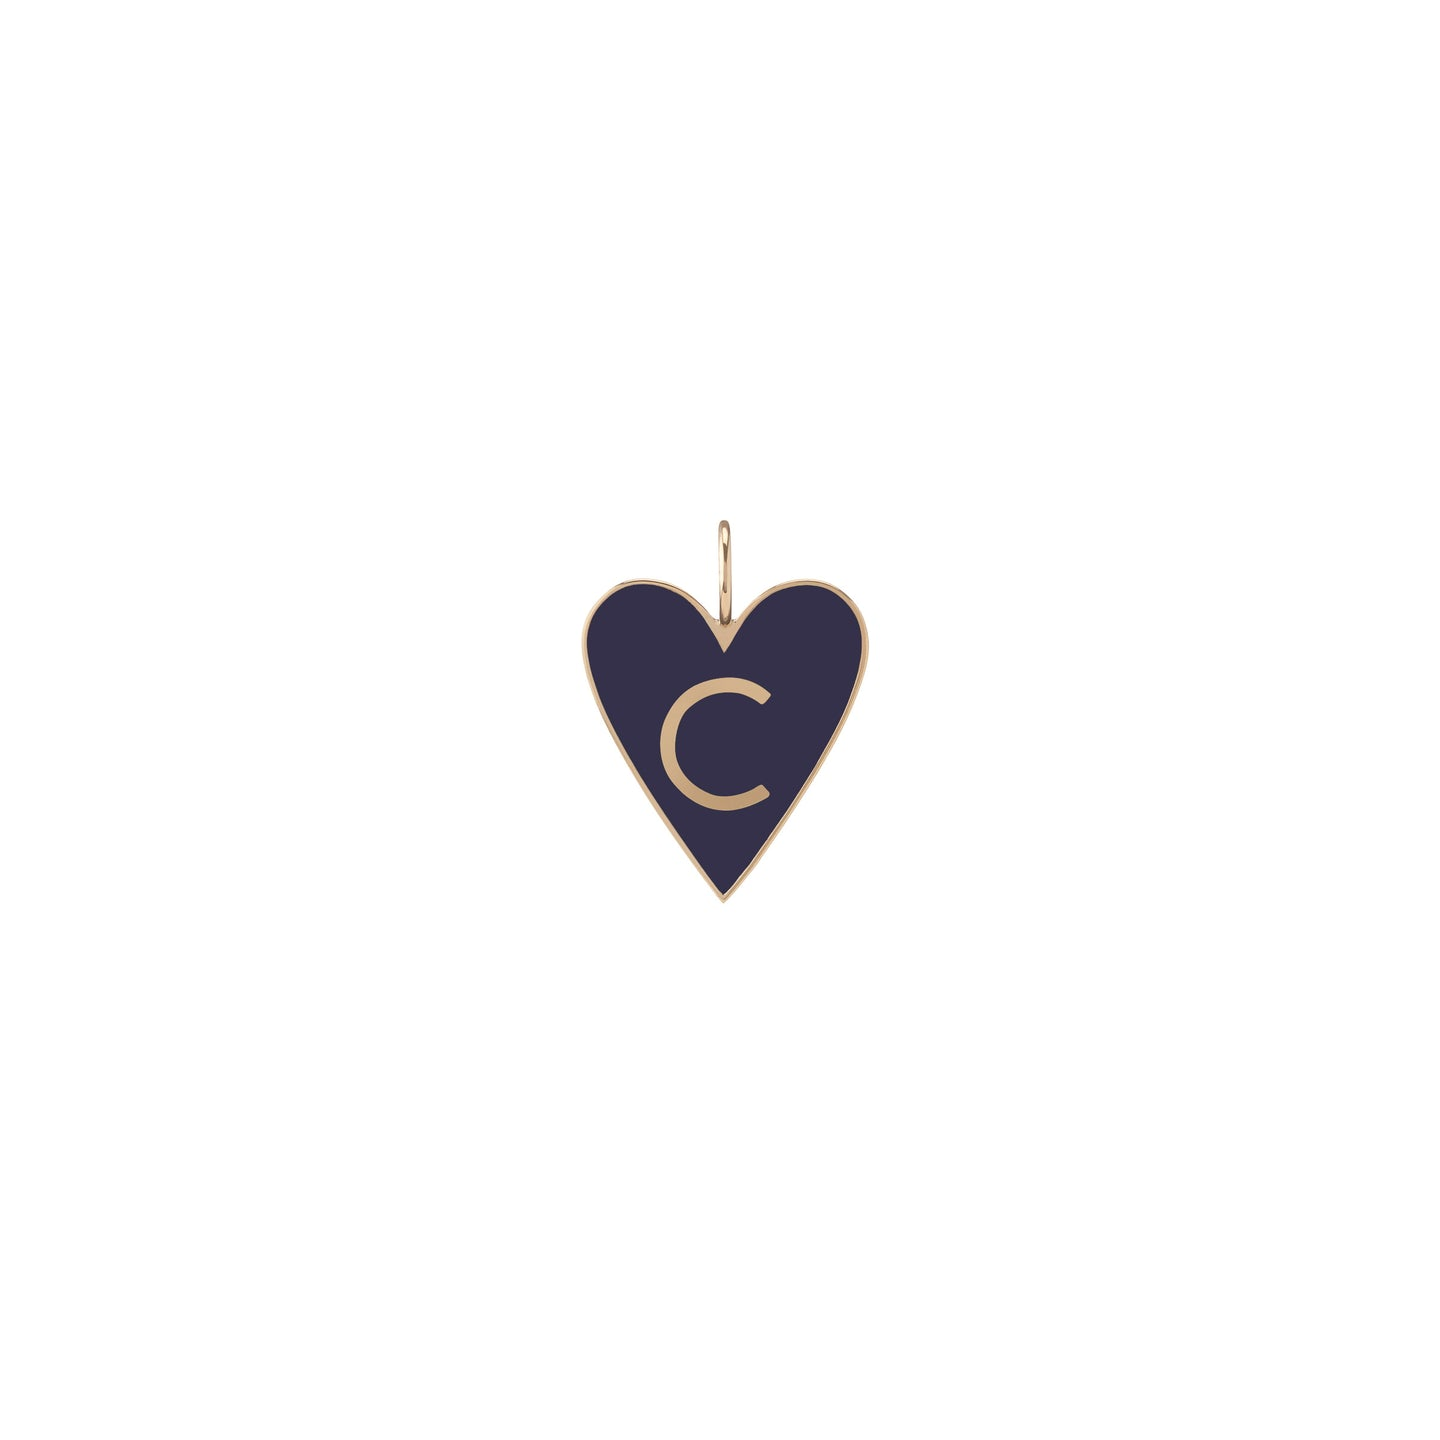 Large Gold Border Enamel Heart with Letter